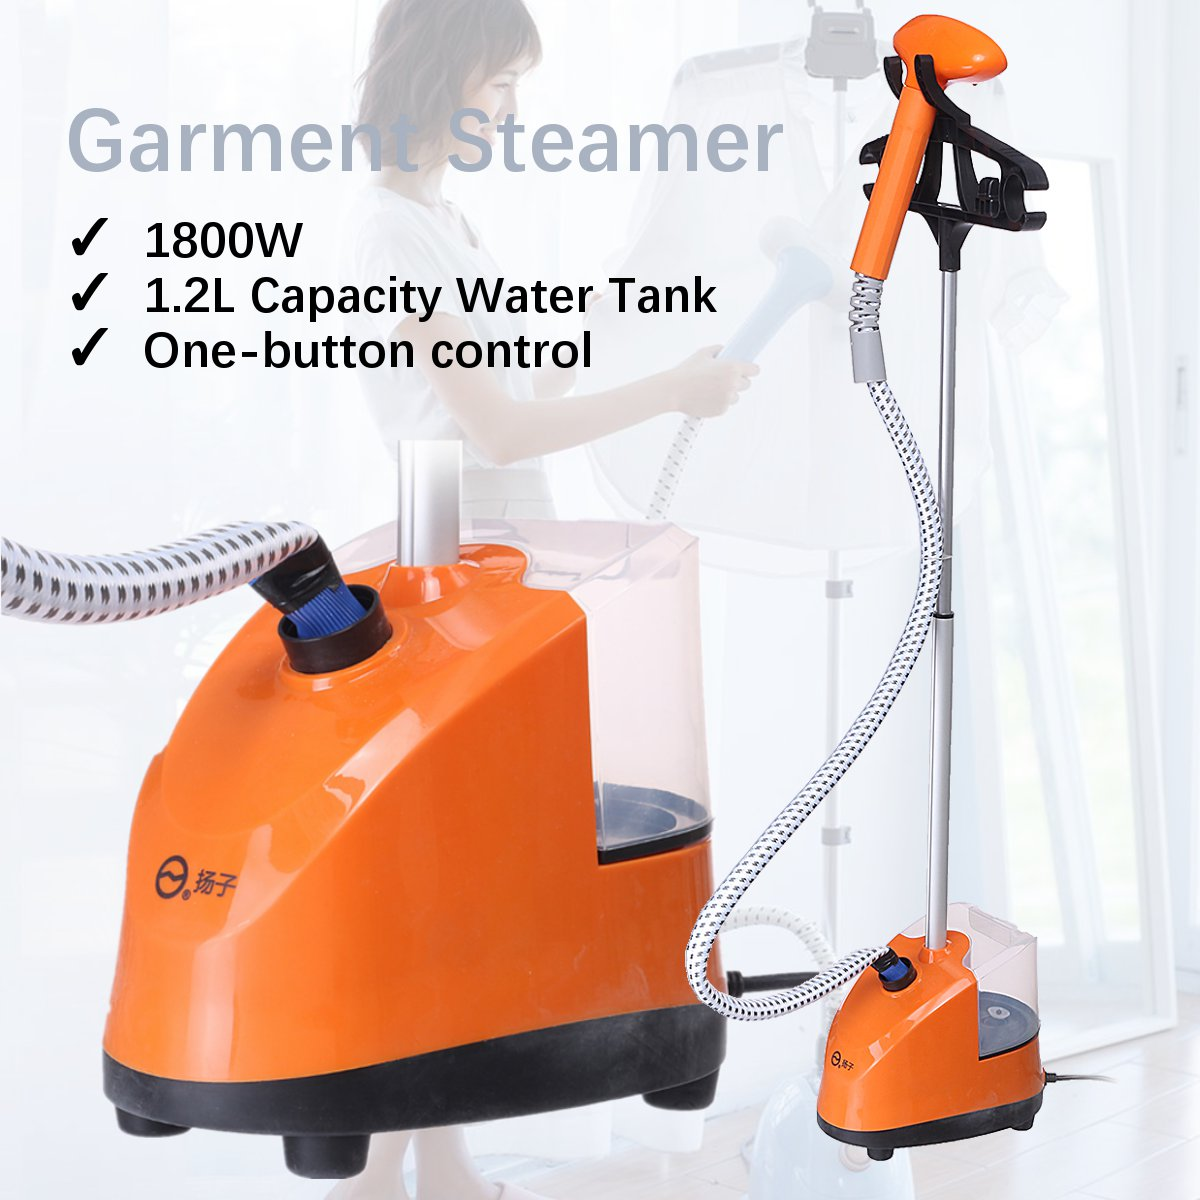 1.2L 1800W Electric Garment Steamer Cloth Fabric Wrinkle Ironing Machine Hanger Heat Water Tank Hanging Steamer Machine 220V